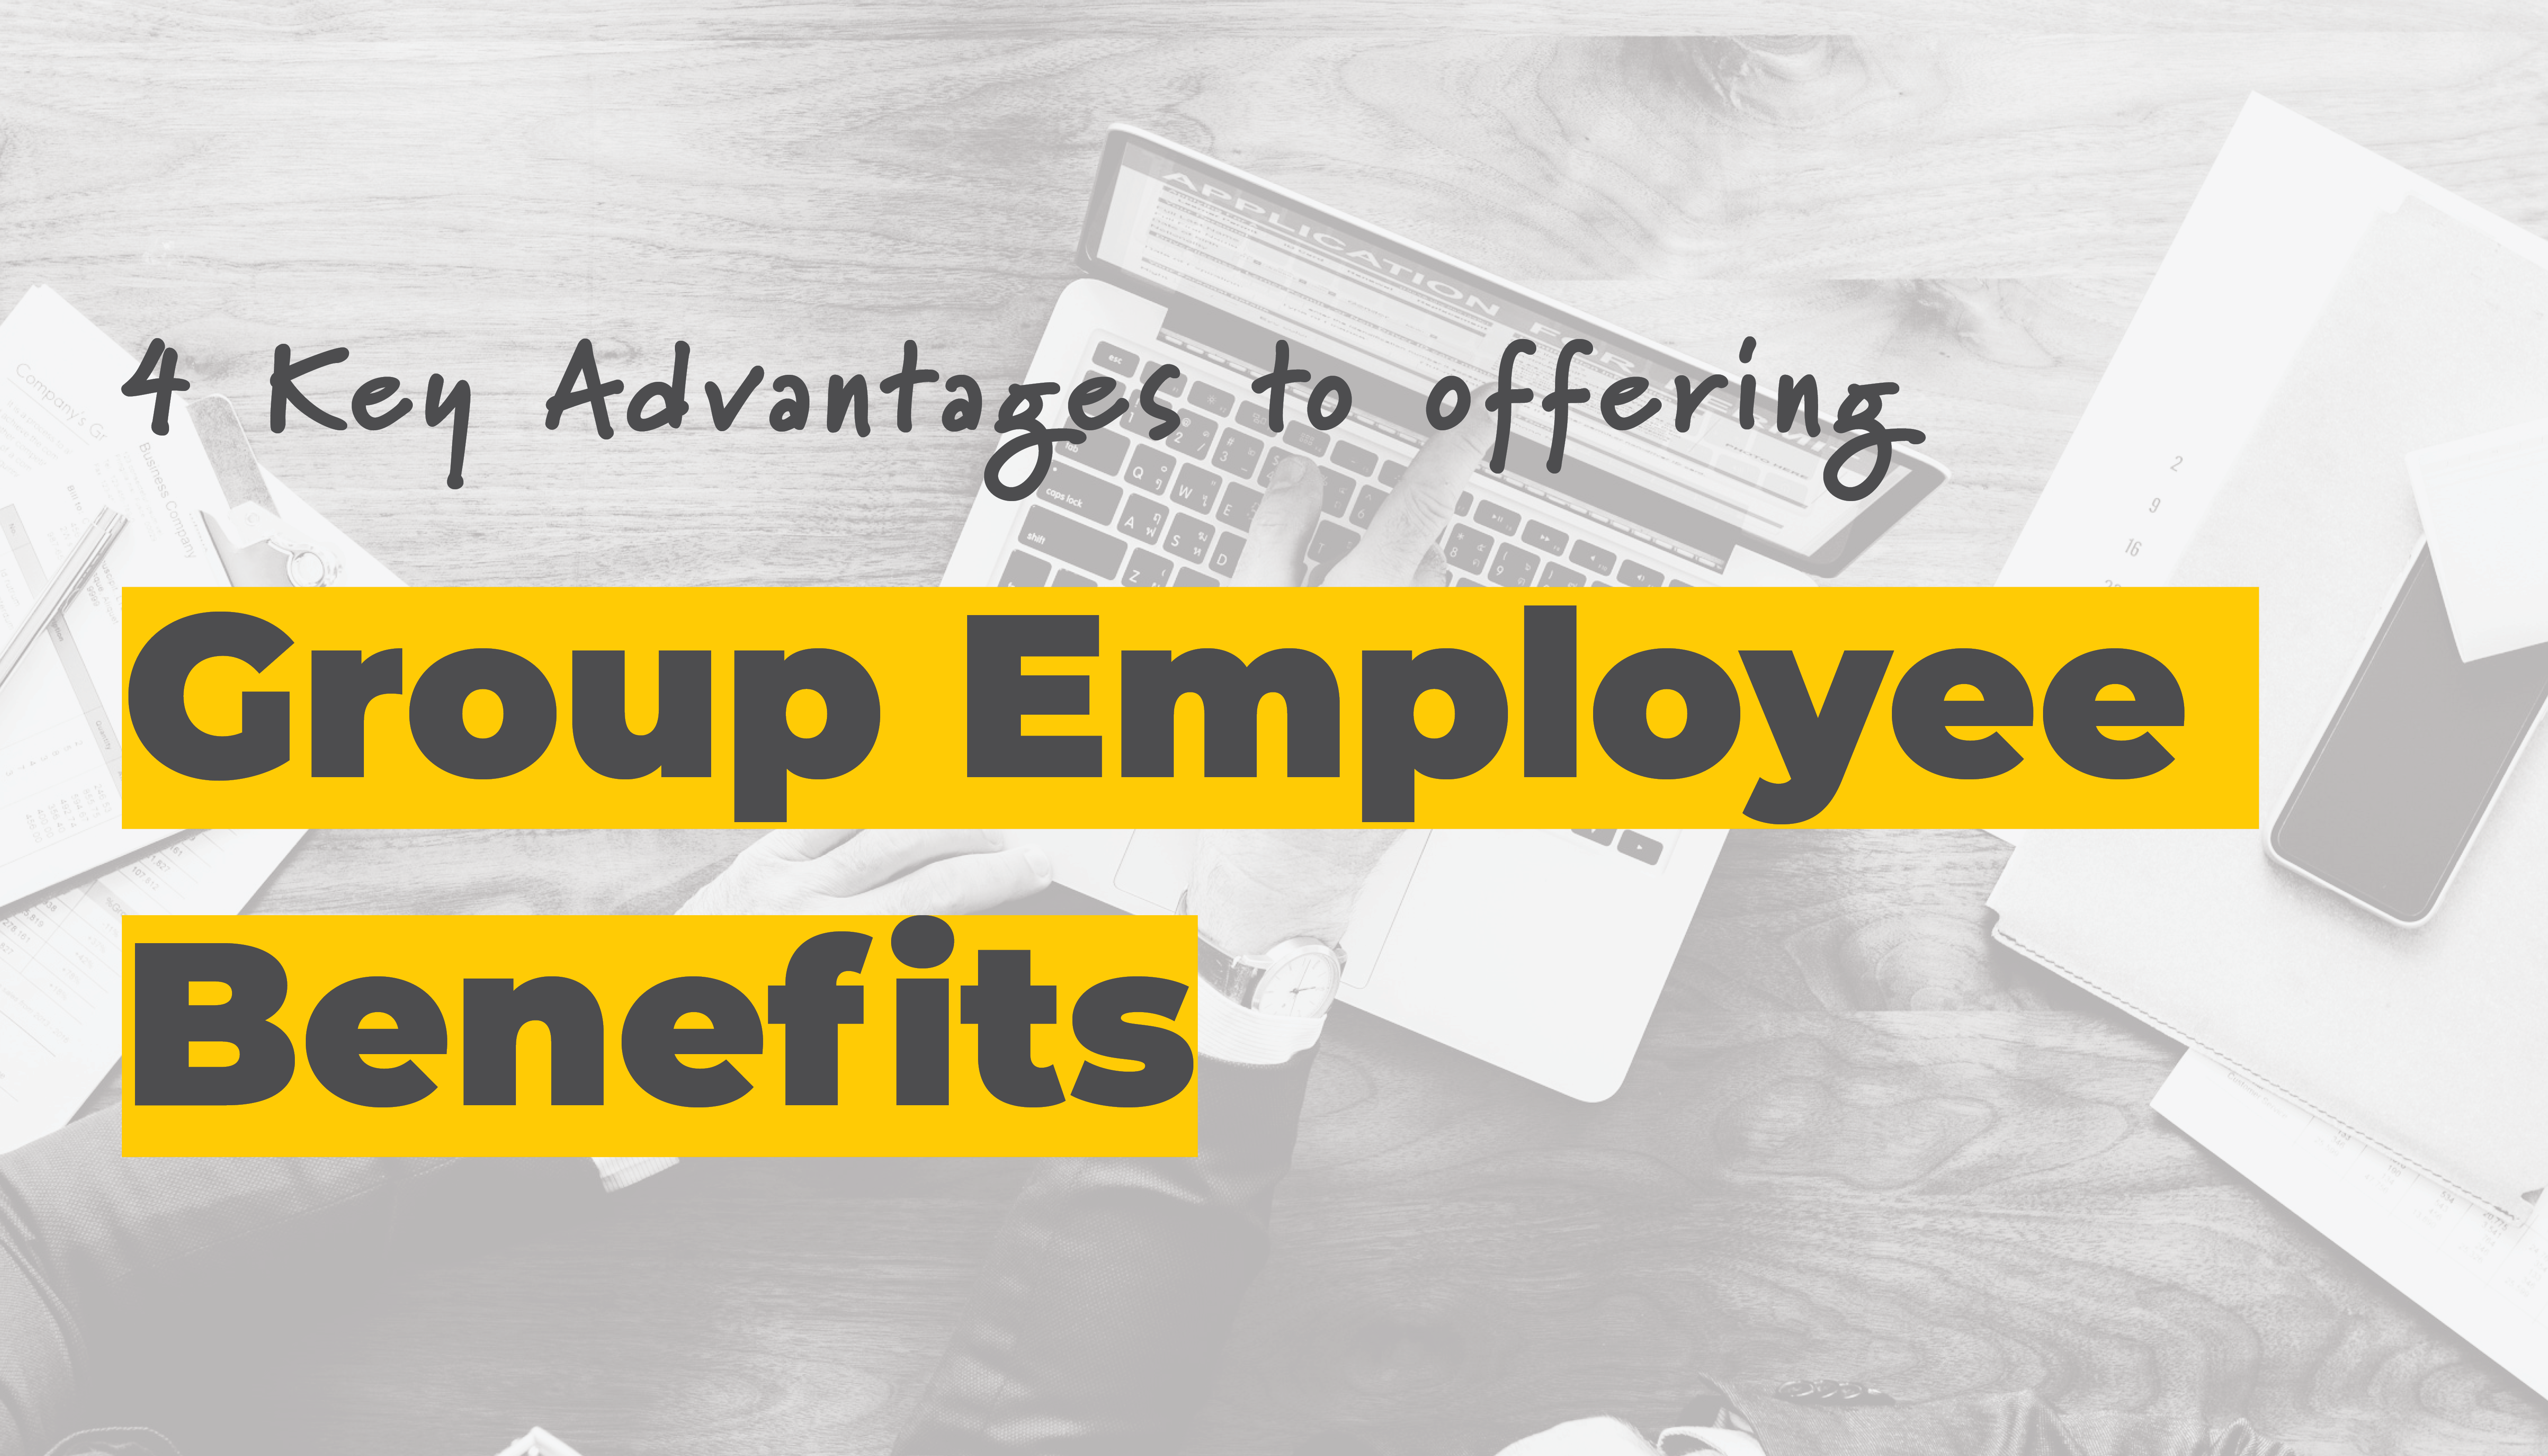 4 Key Advantages of Offering Group Employee Benefits | Benefits by Design